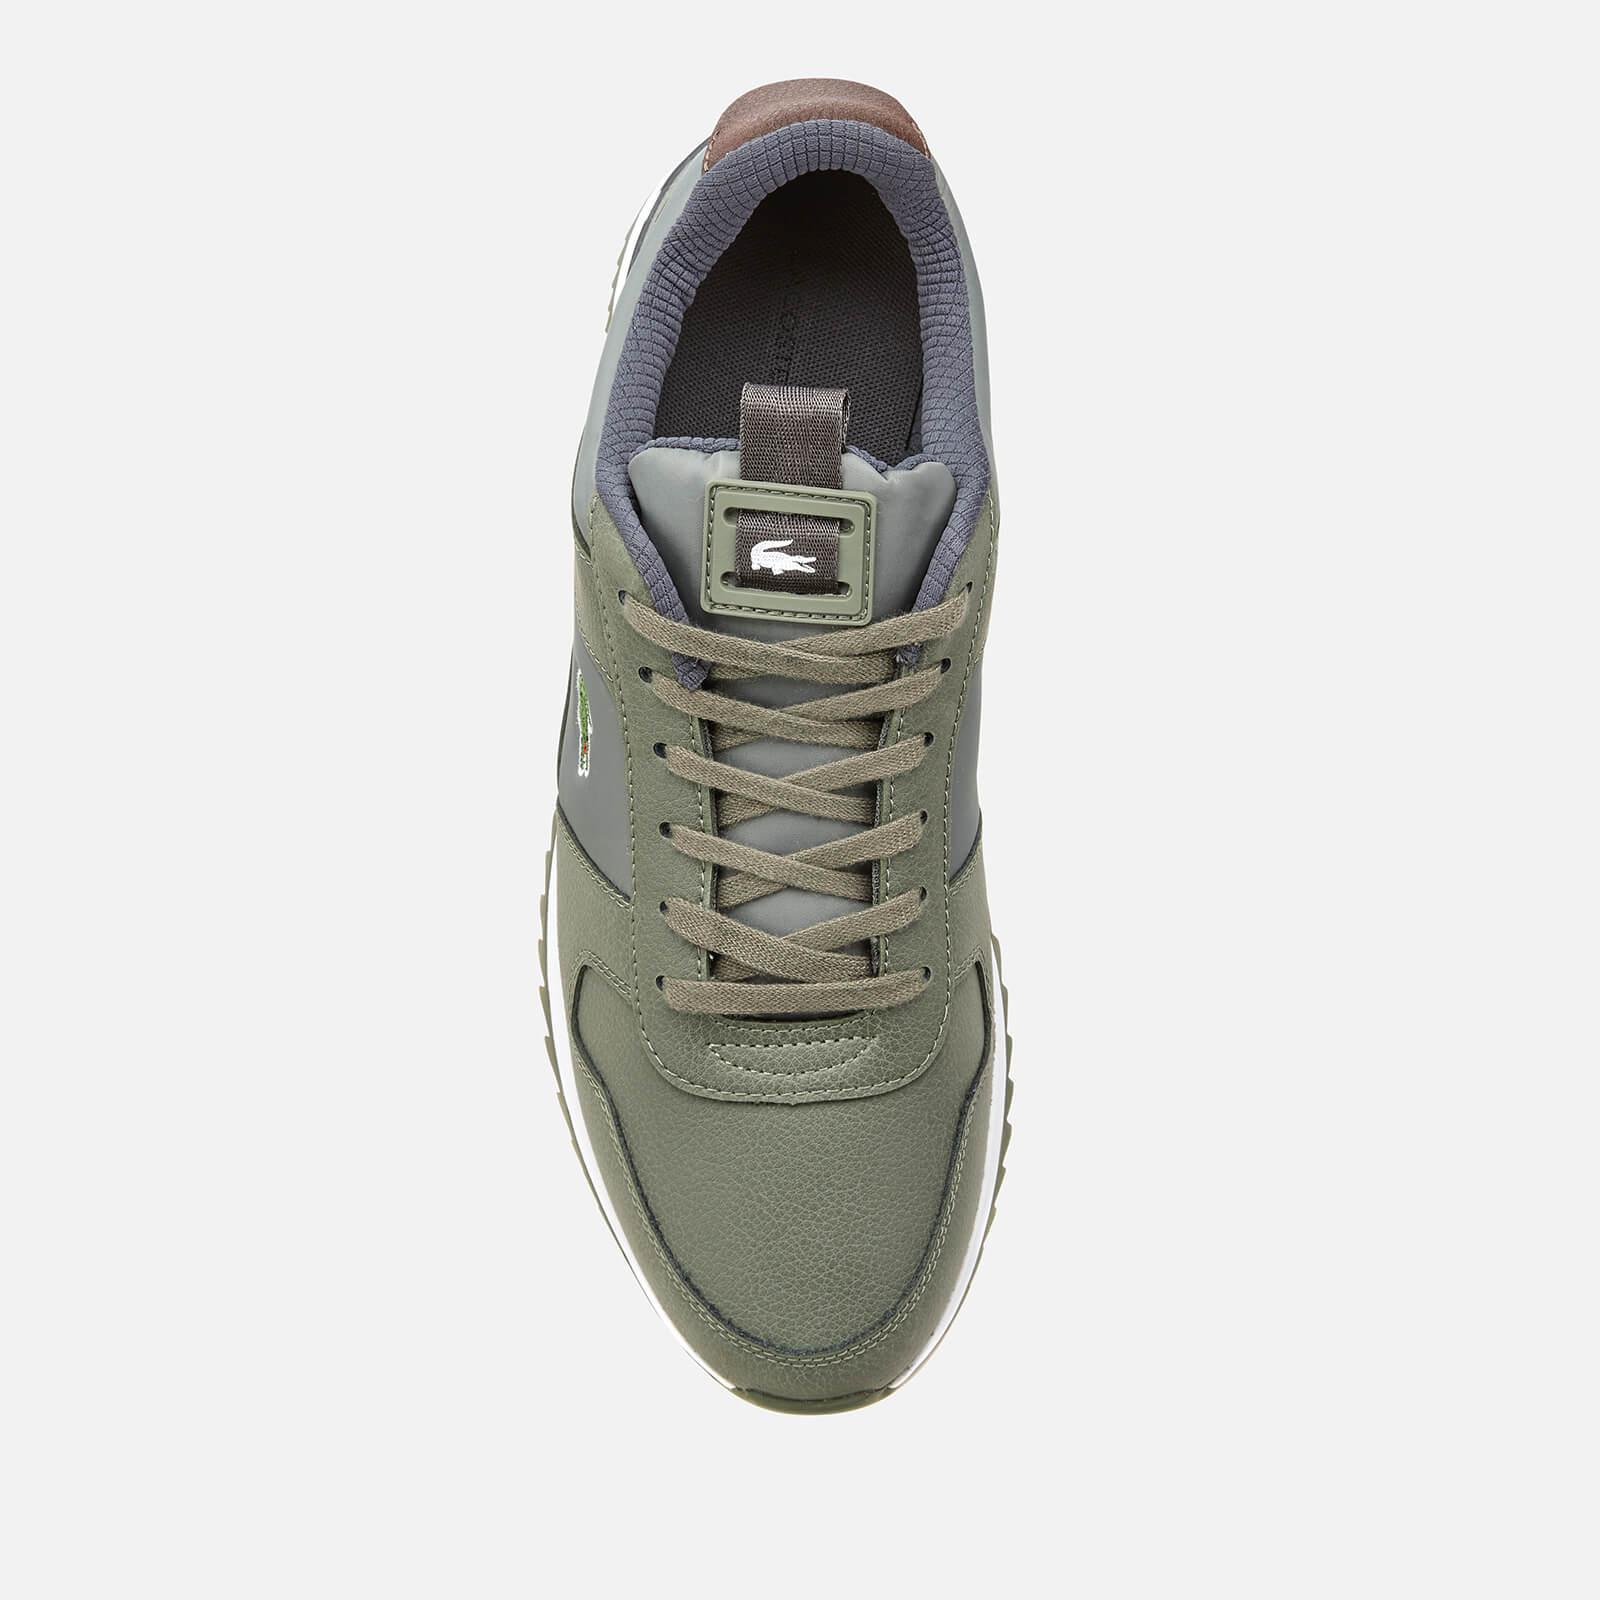 daa1fc8cbc1 Lacoste - Green Joggeur 2.0 318 1 Textile leather Runner Style Trainers for  Men -. View fullscreen